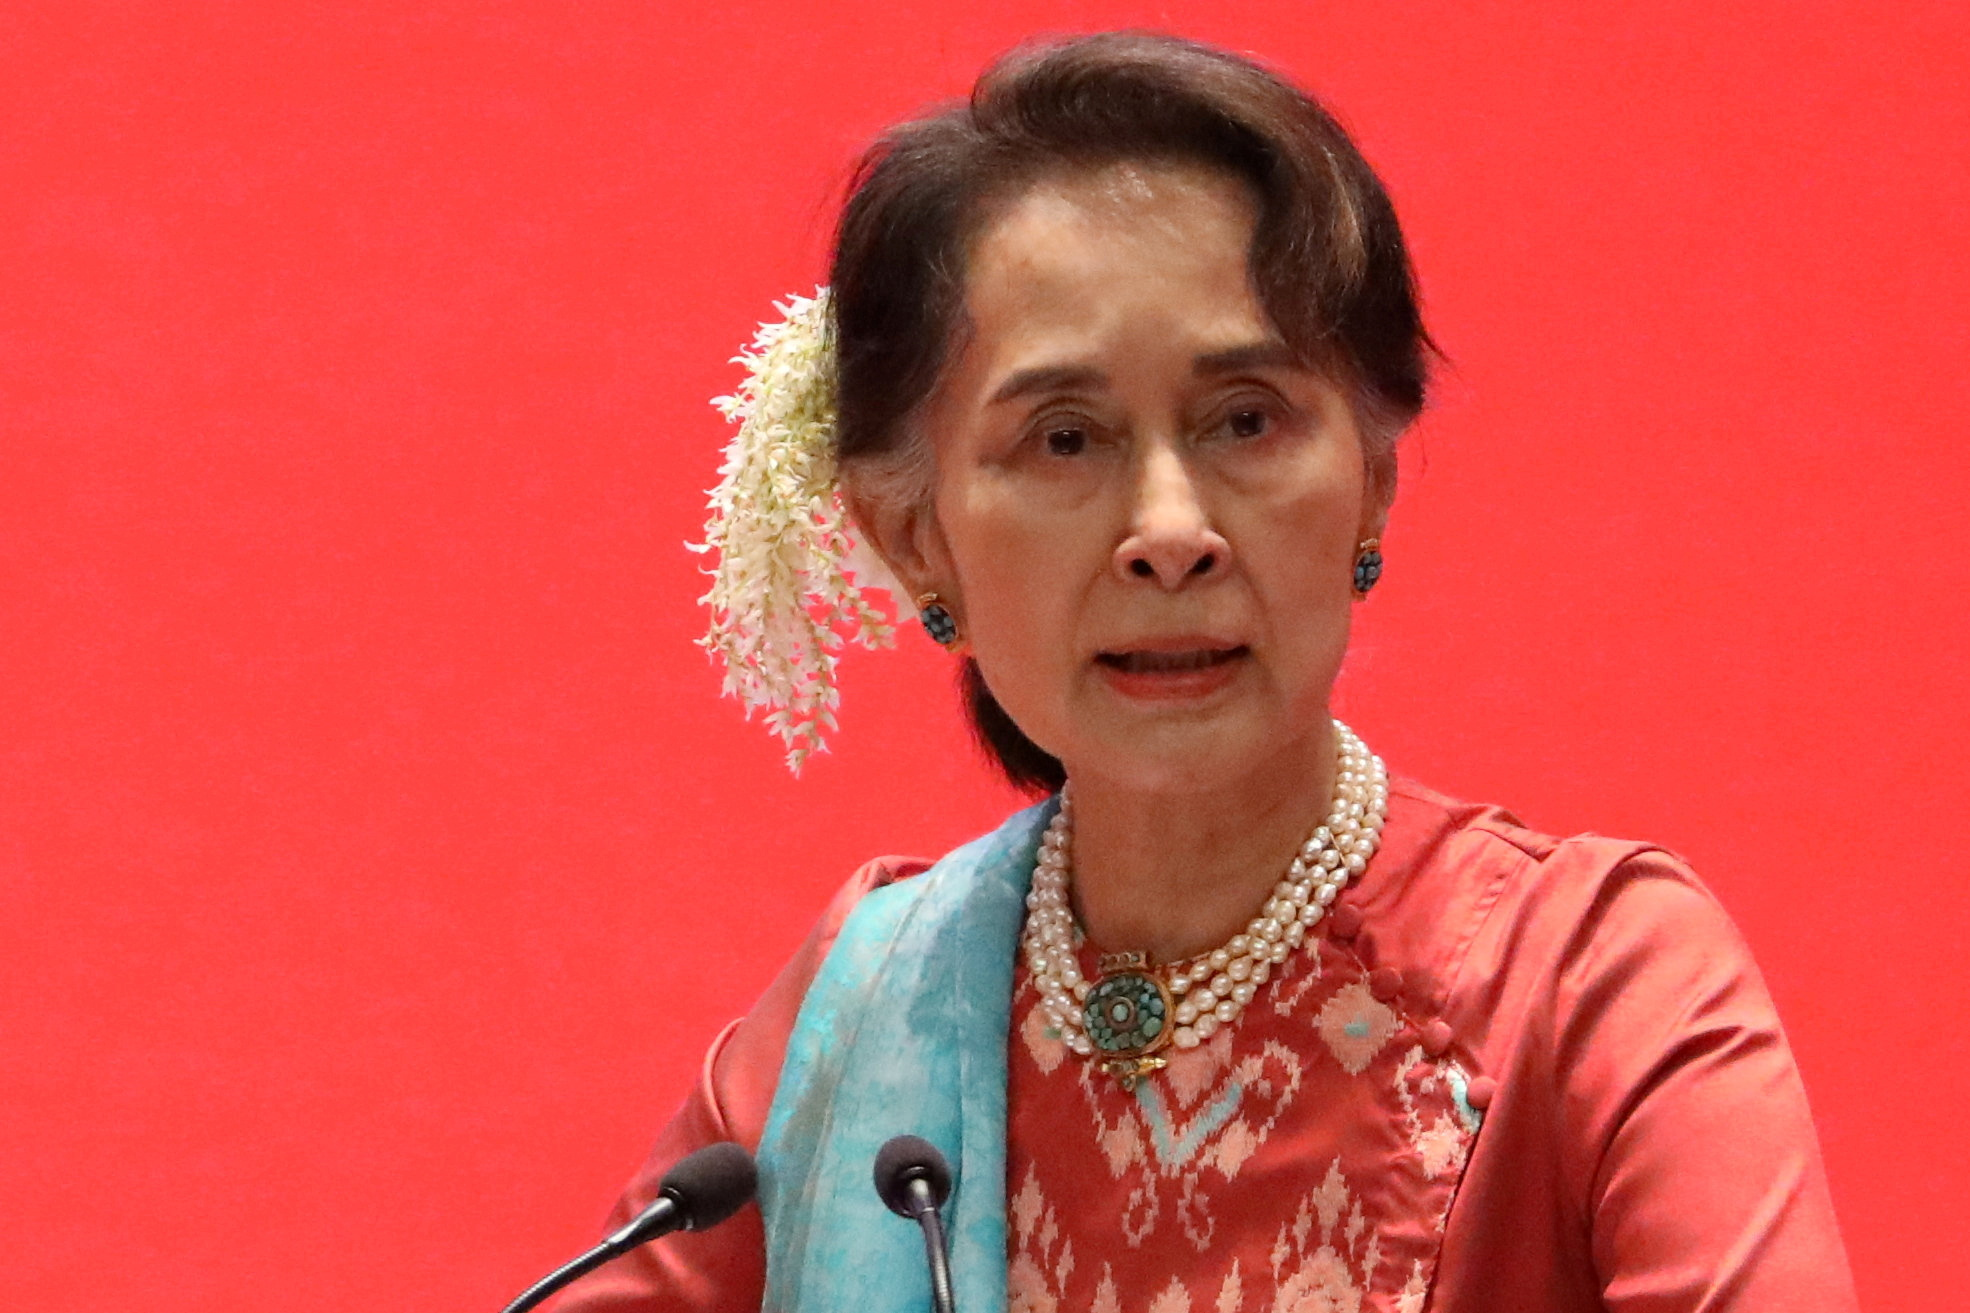 Myanmar's State Counsellor Aung San Suu Kyi attends Invest Myanmar in Naypyitaw, Myanmar, January 28, 2019. REUTERS/Ann Wang